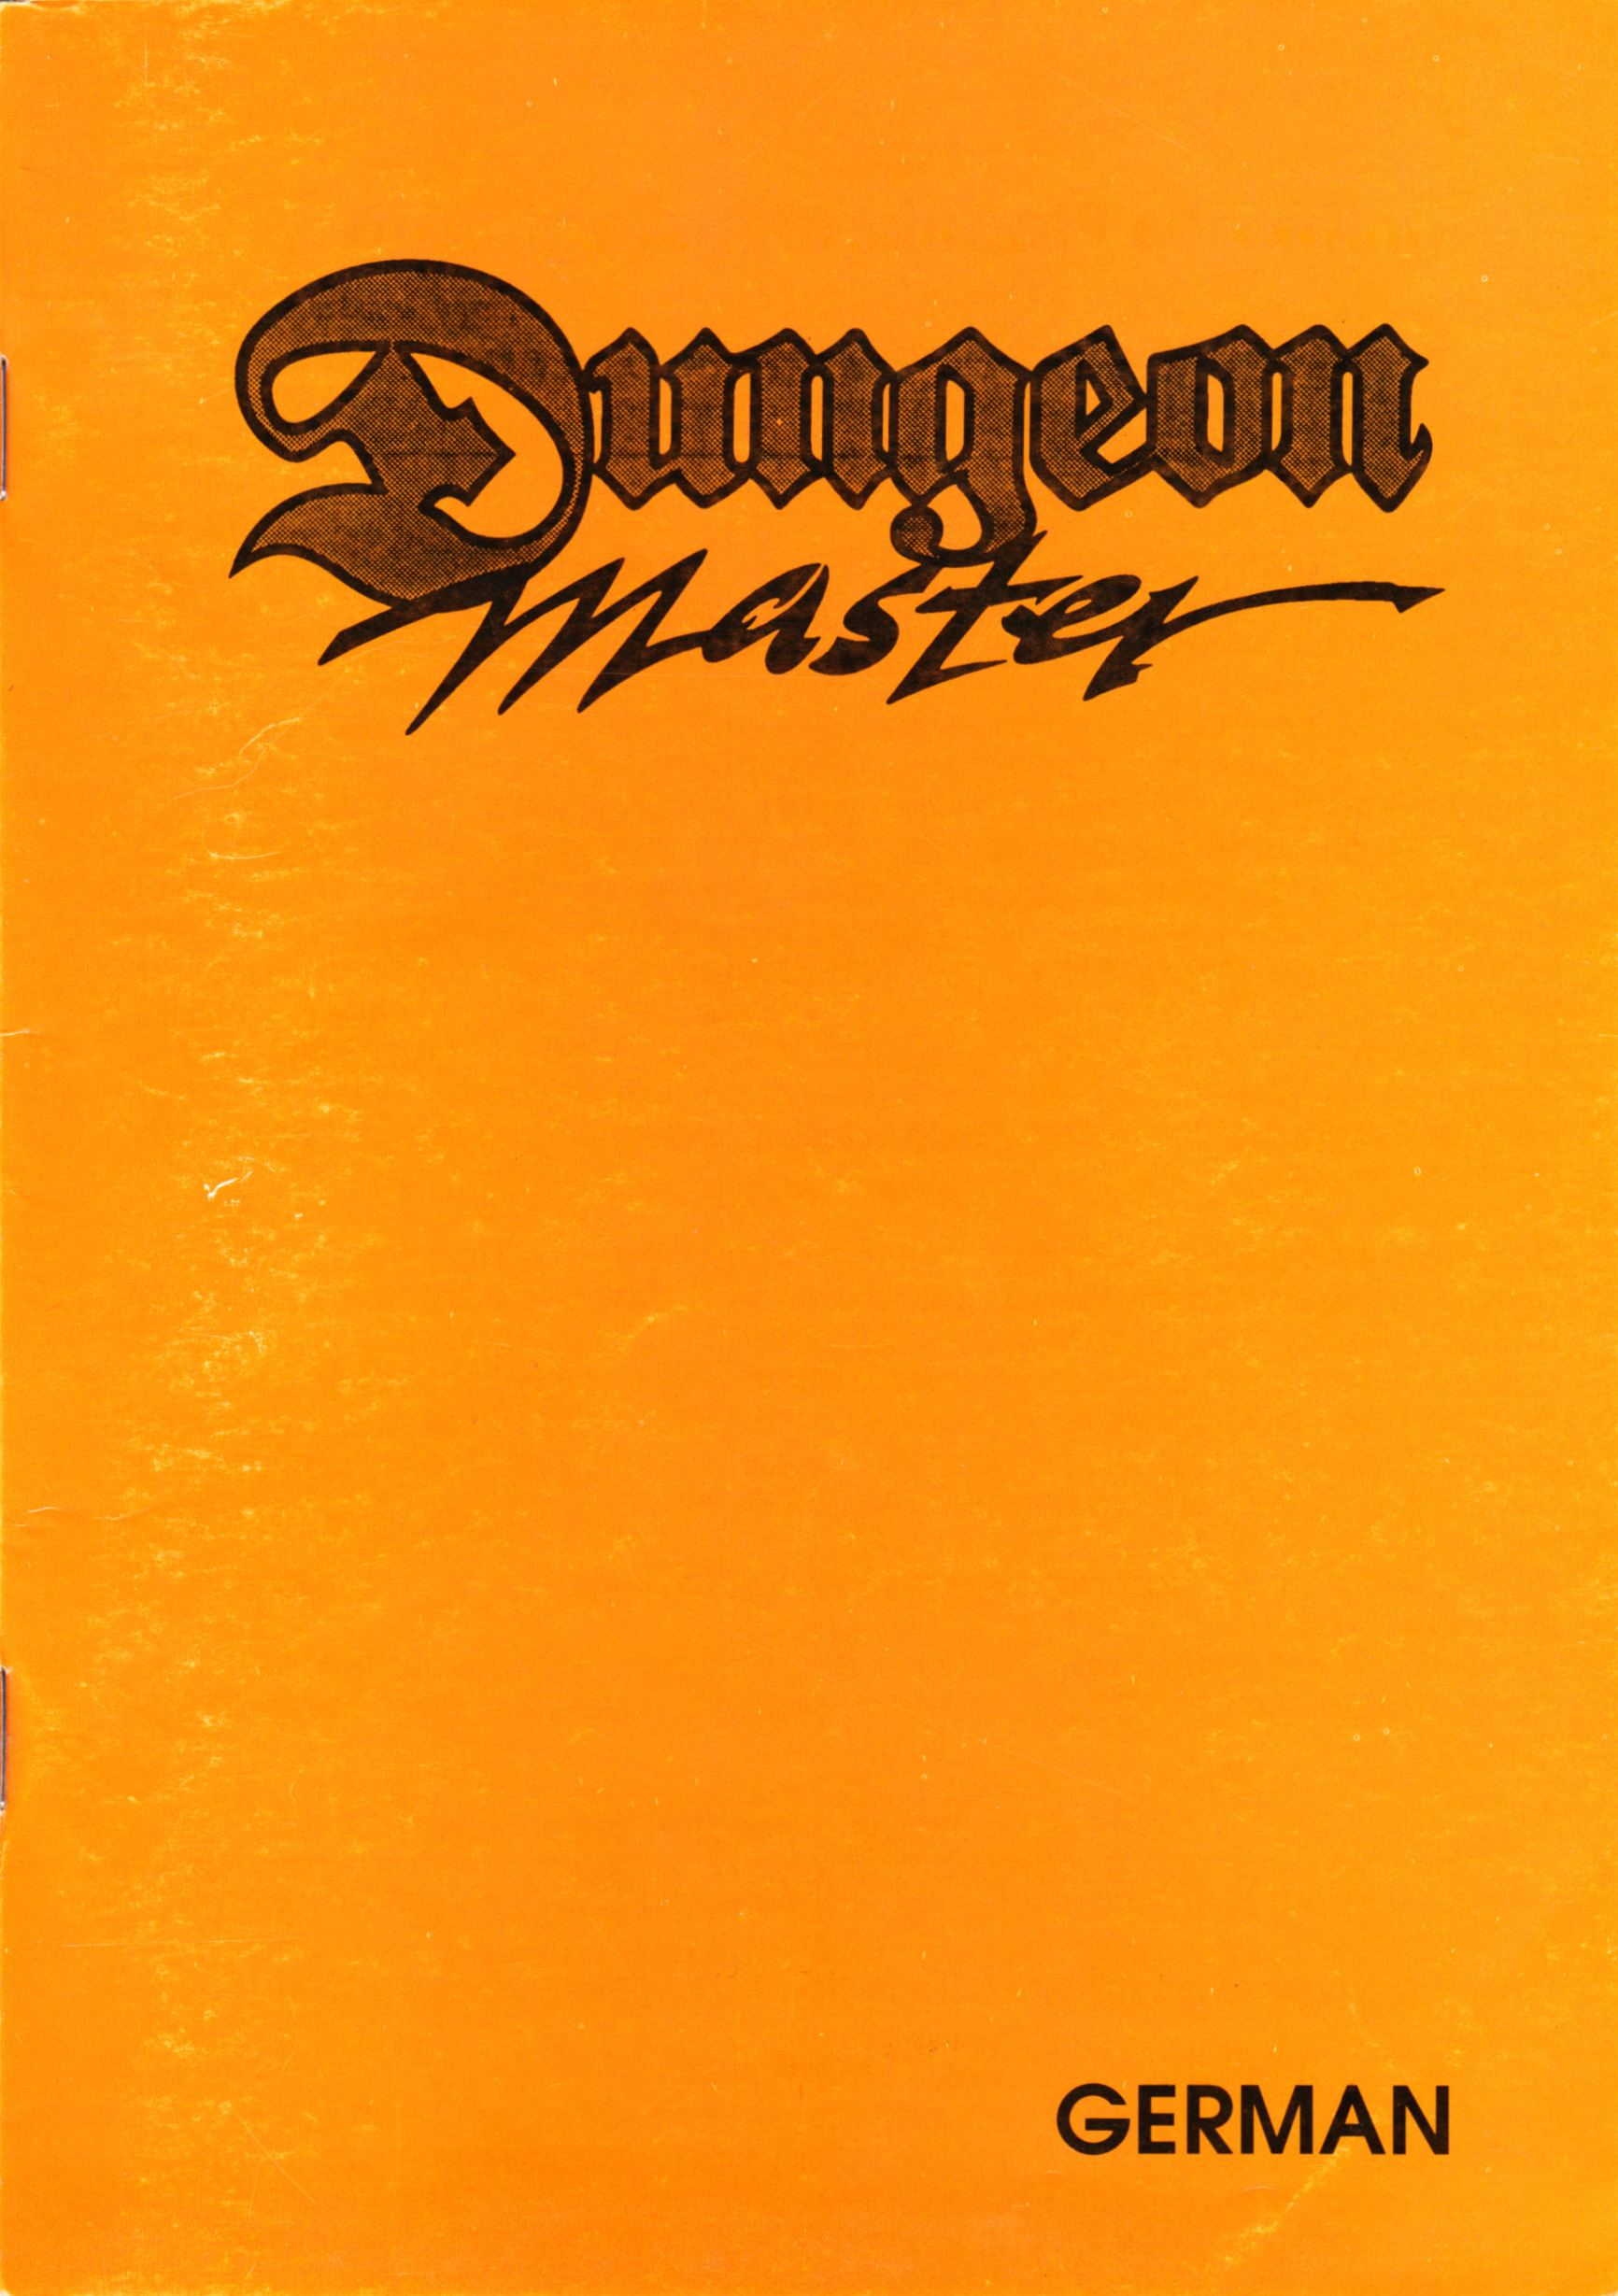 Game - Dungeon Master - DE - PC - Psygnosis - Manual - Page 001 - Scan